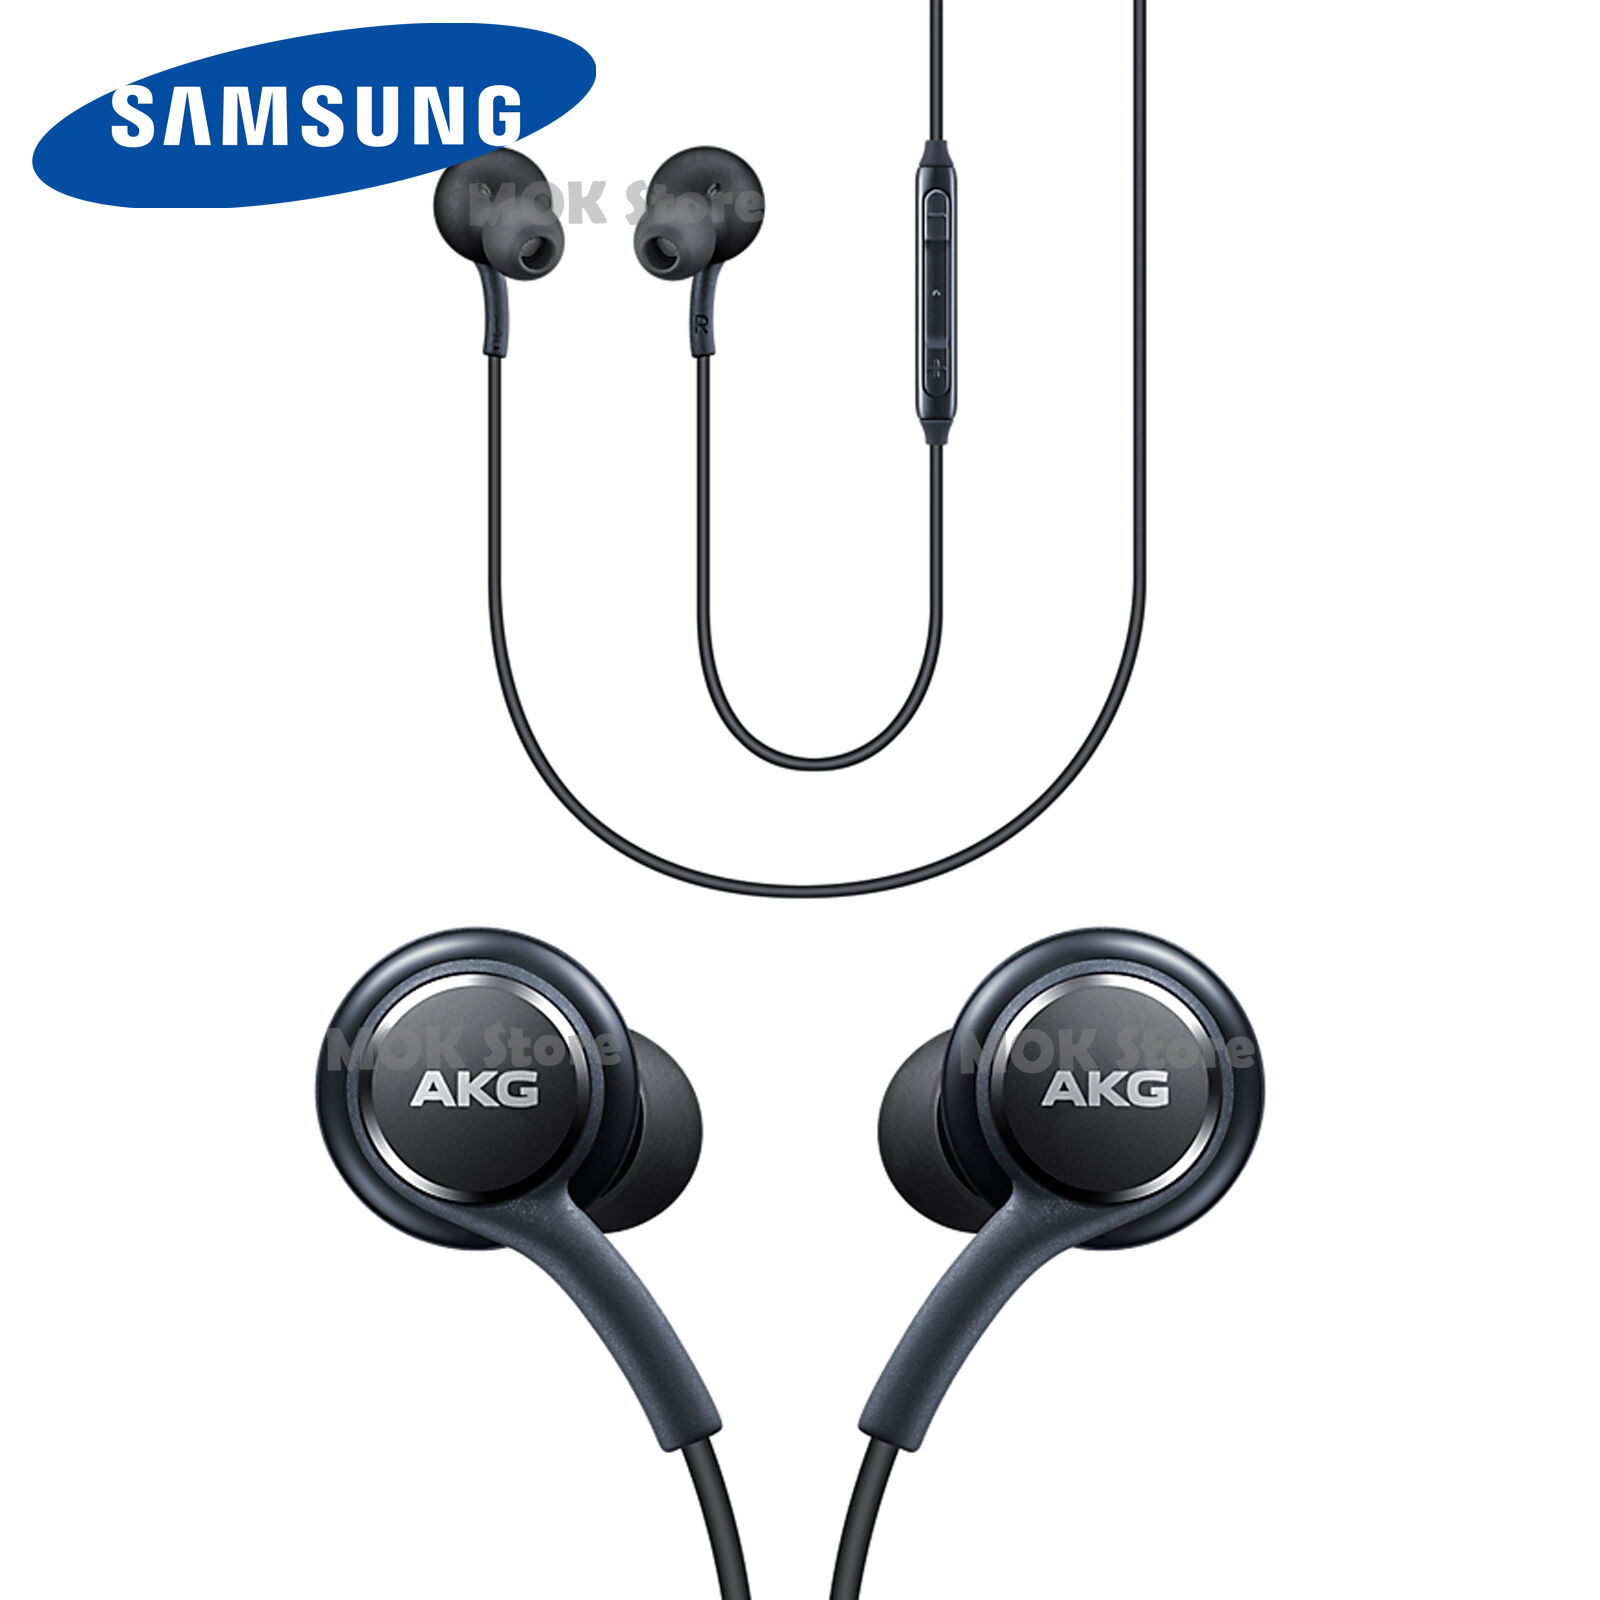 Samsung Galaxy S8 S8+ Accessory Earphones Tuned By AKG EO ...